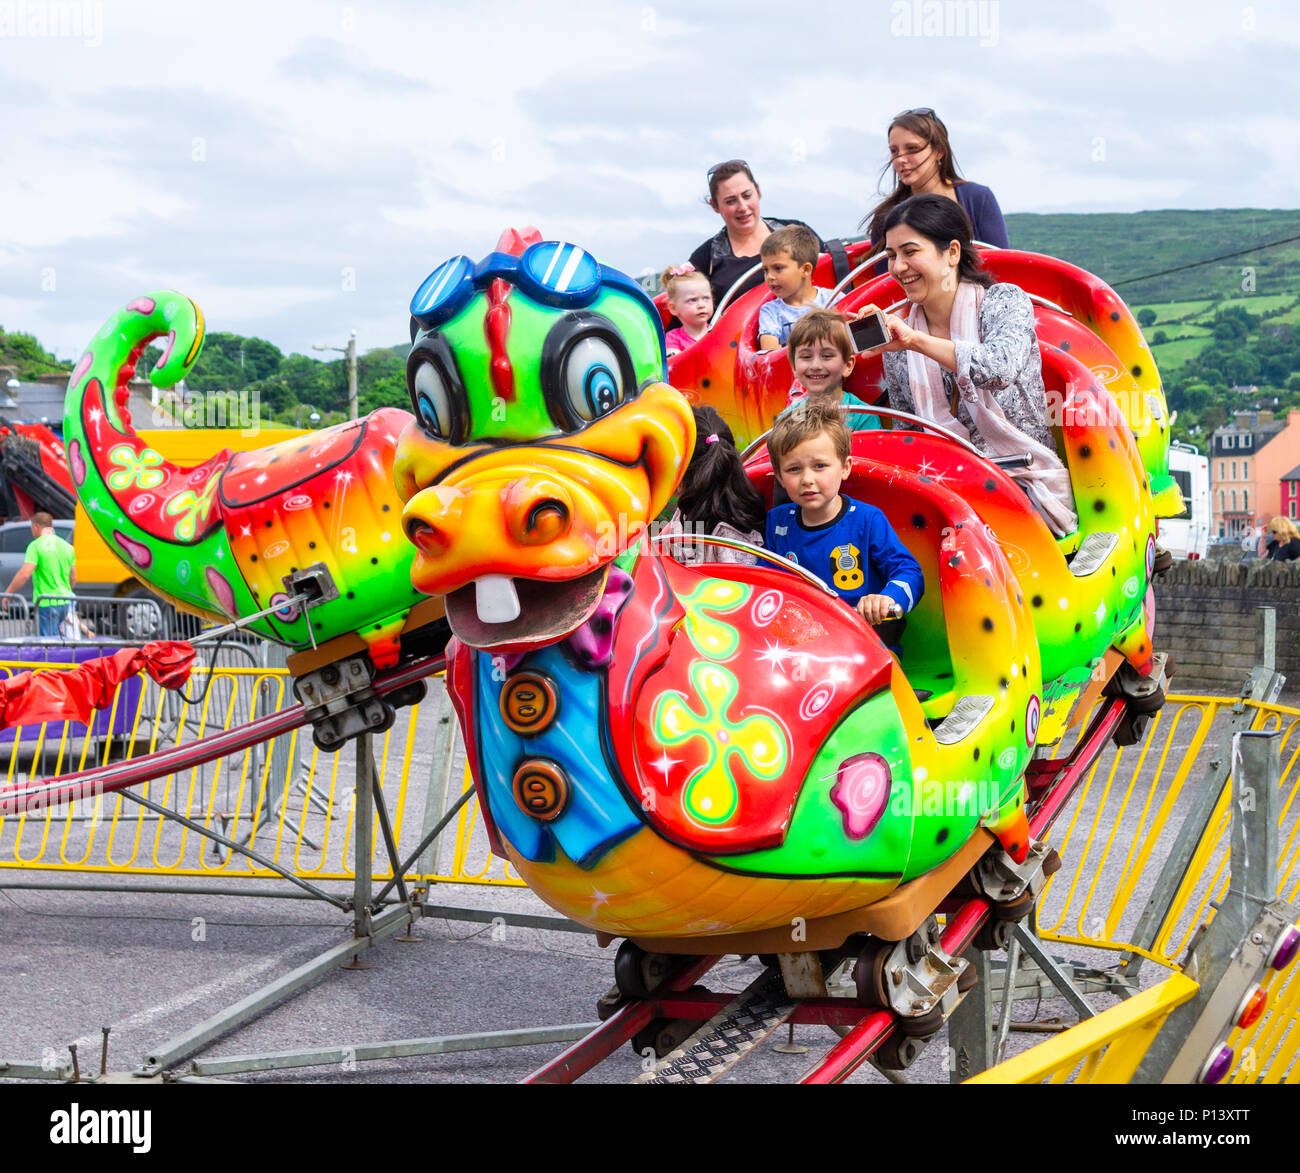 family-enjoying-a-fun-day-out-on-the-fairground-rides-at-the-funfair-in-bantry-ireland-P13XTT.jpg